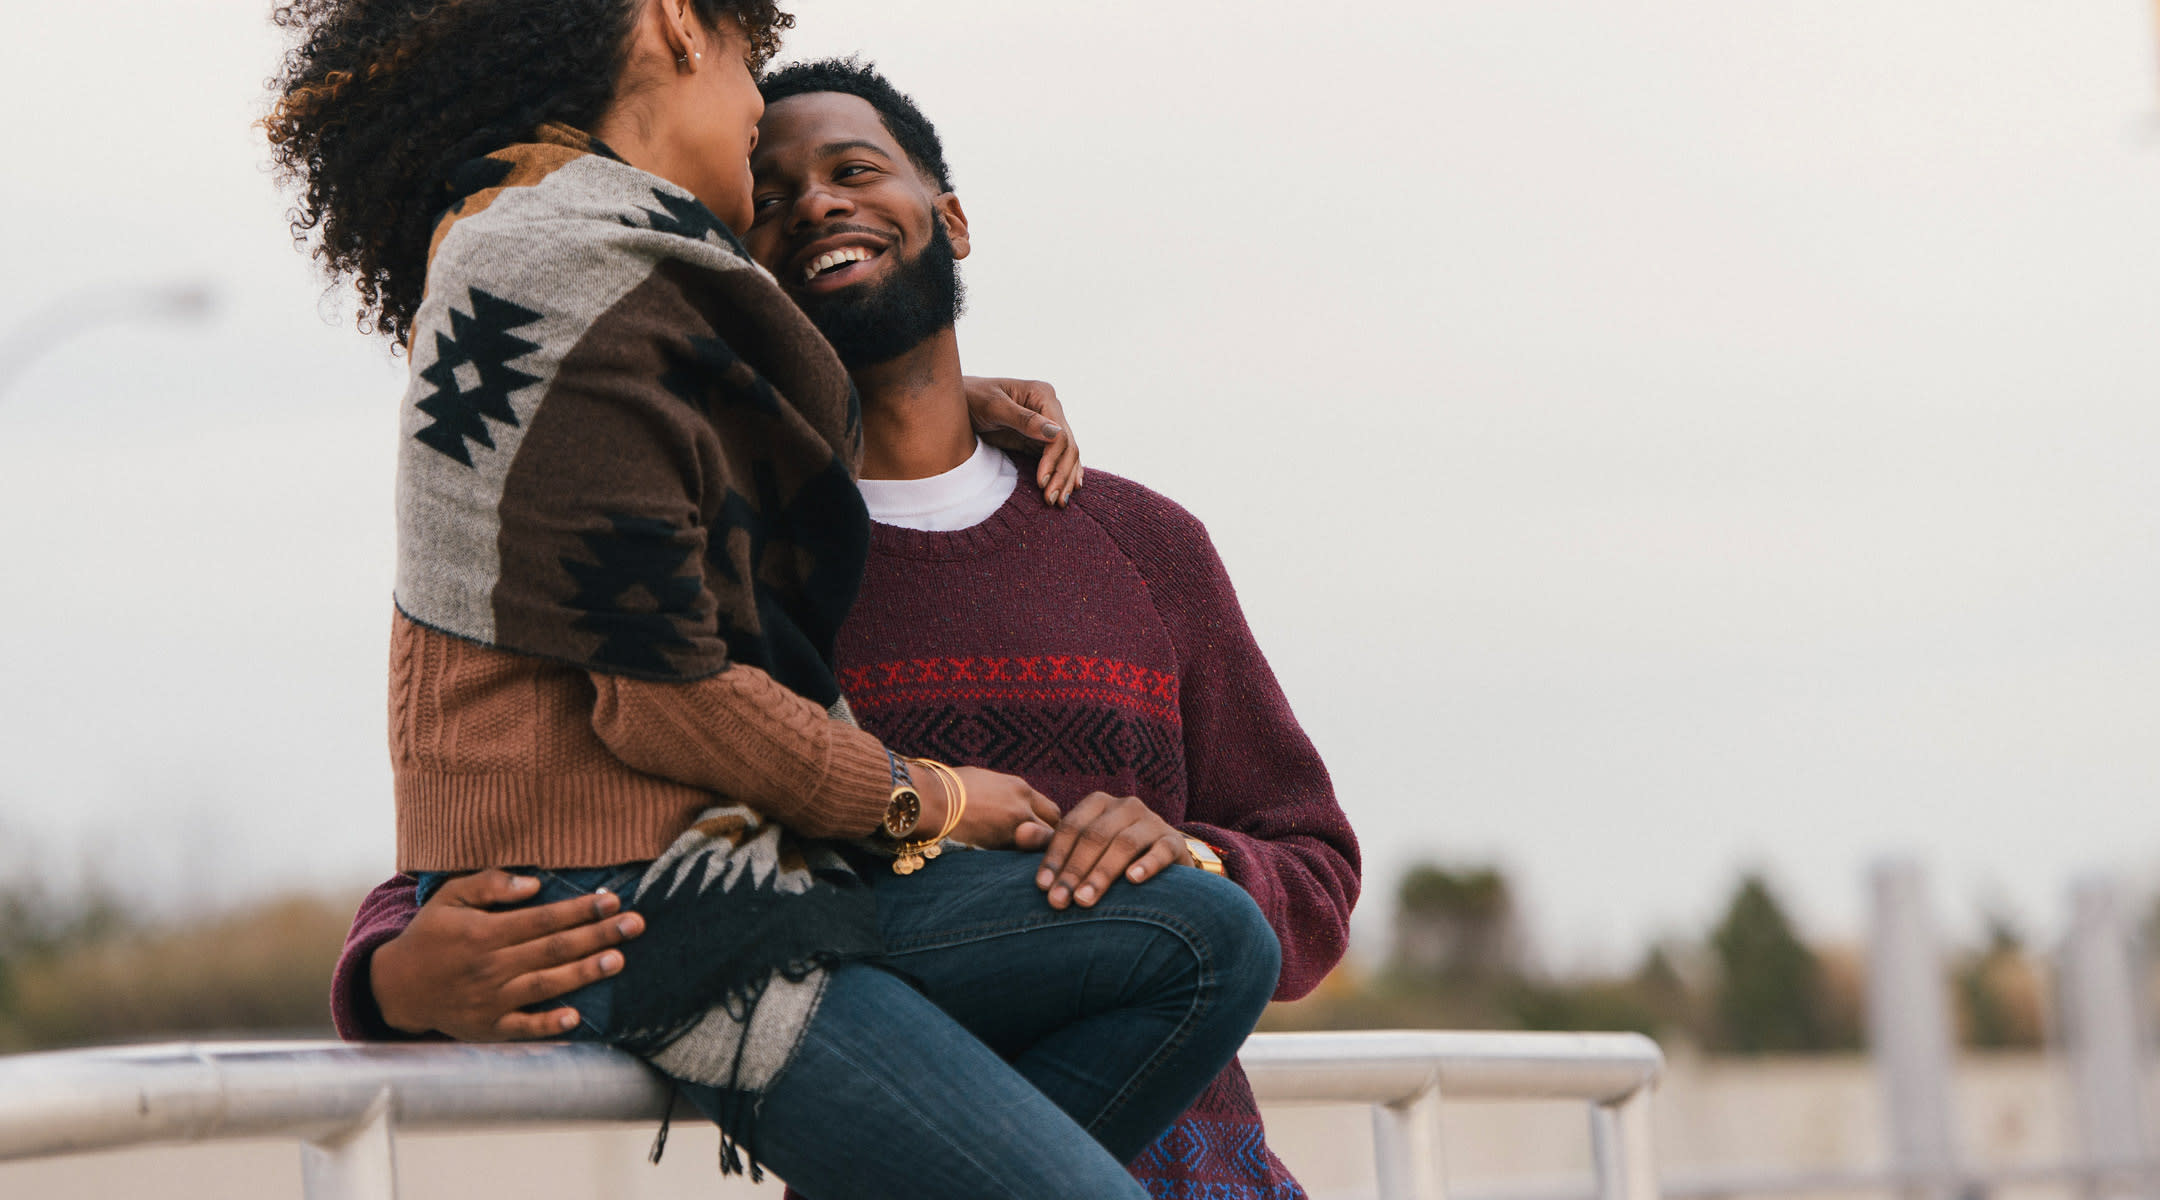 African American couple embracing outside.